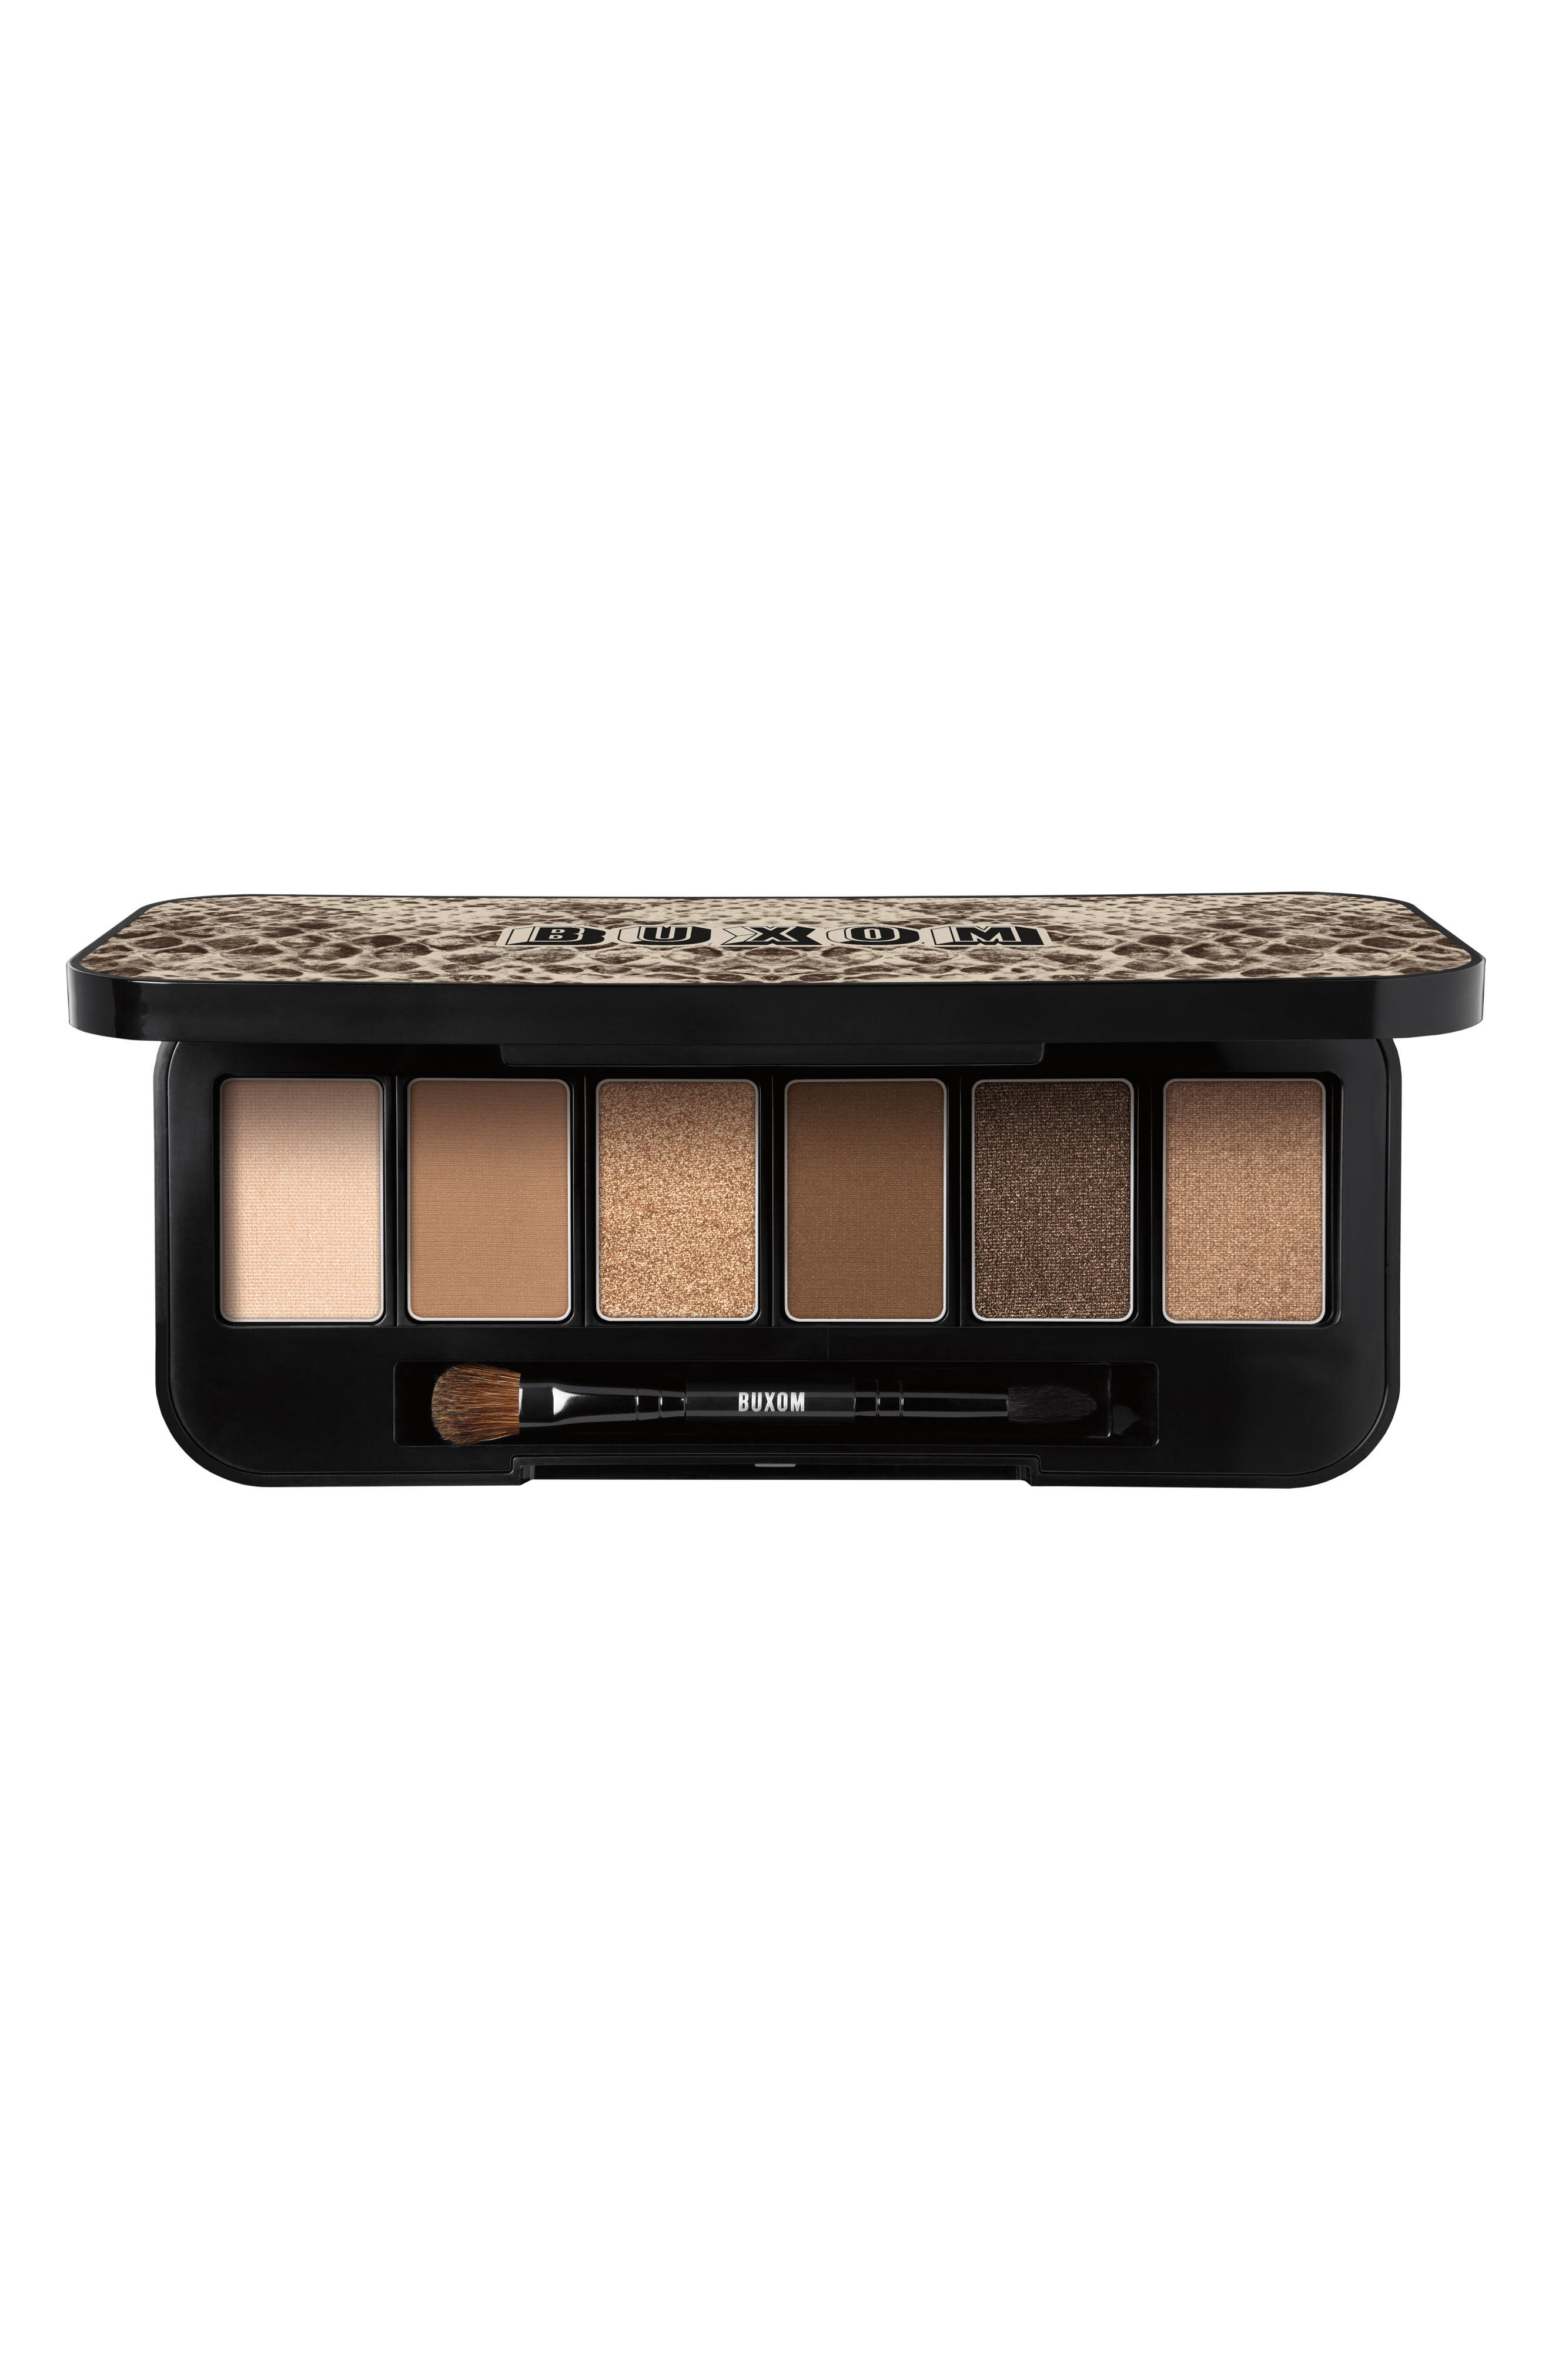 Main Image - Buxom May Contain Nudity Eyeshadow Palette ($85 Value)